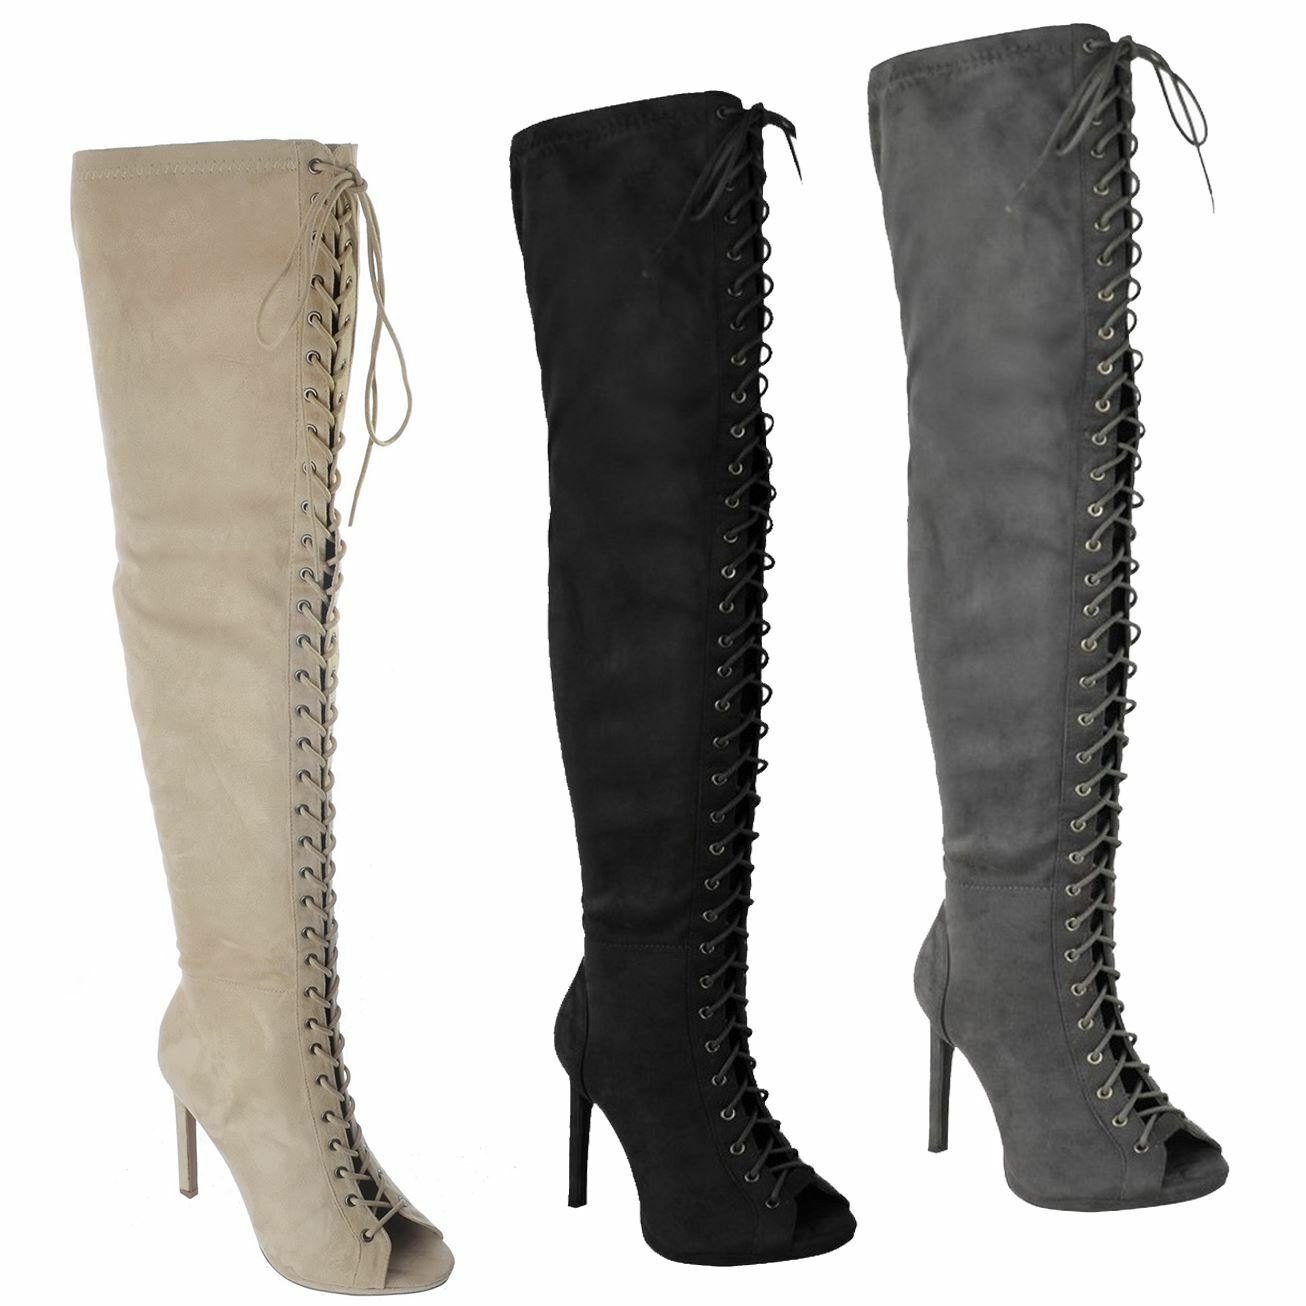 WOMENS LADIES OVER THE KNEE THIGH HIGH PEEP TOE LACE UP STILETTO HEEL BOOTS SIZE